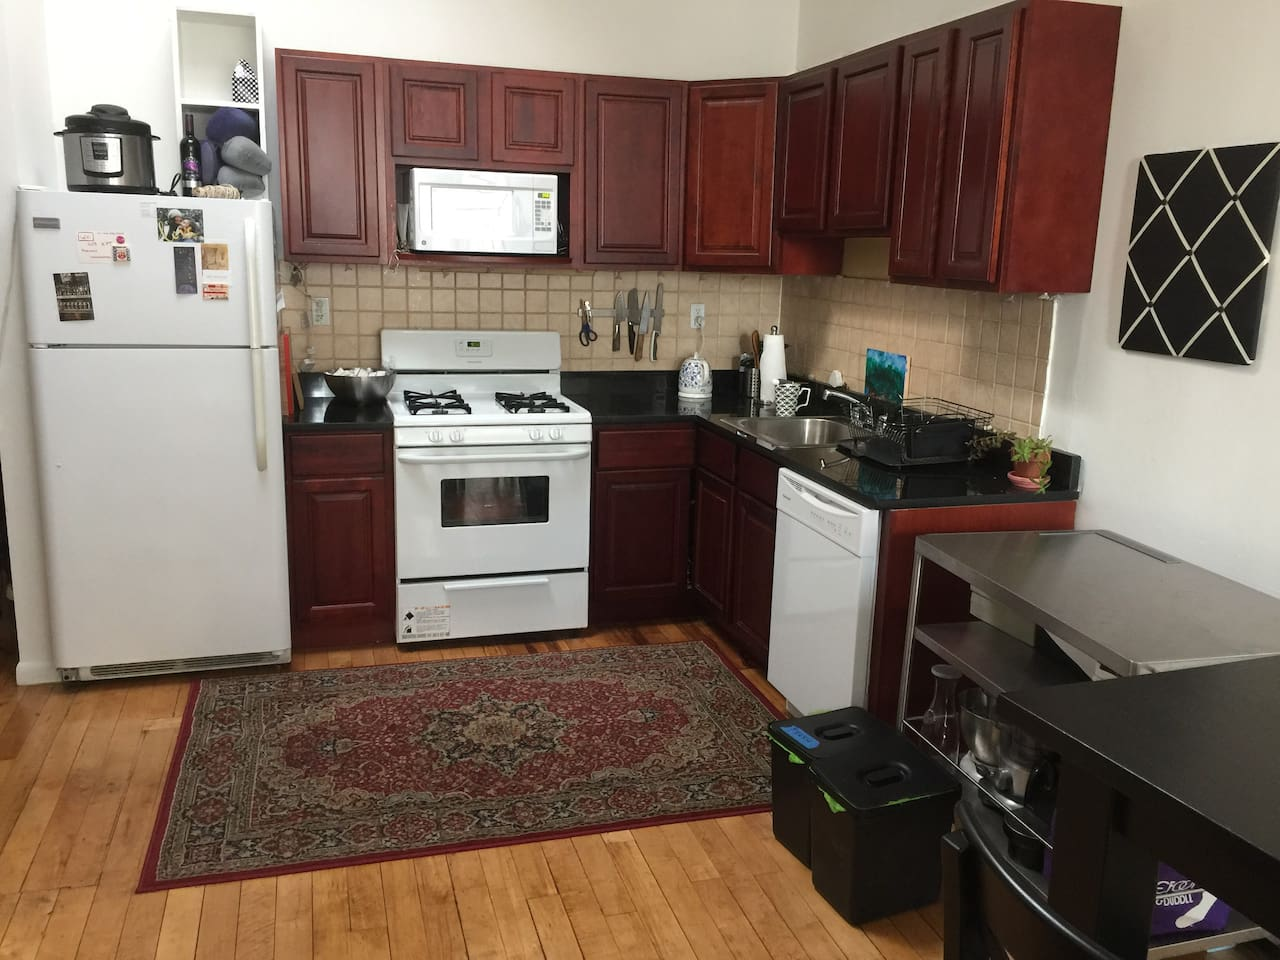 Full kitchen. There is a blender, food processor and stand mixed. Appliances include a microwave and dishwasher.